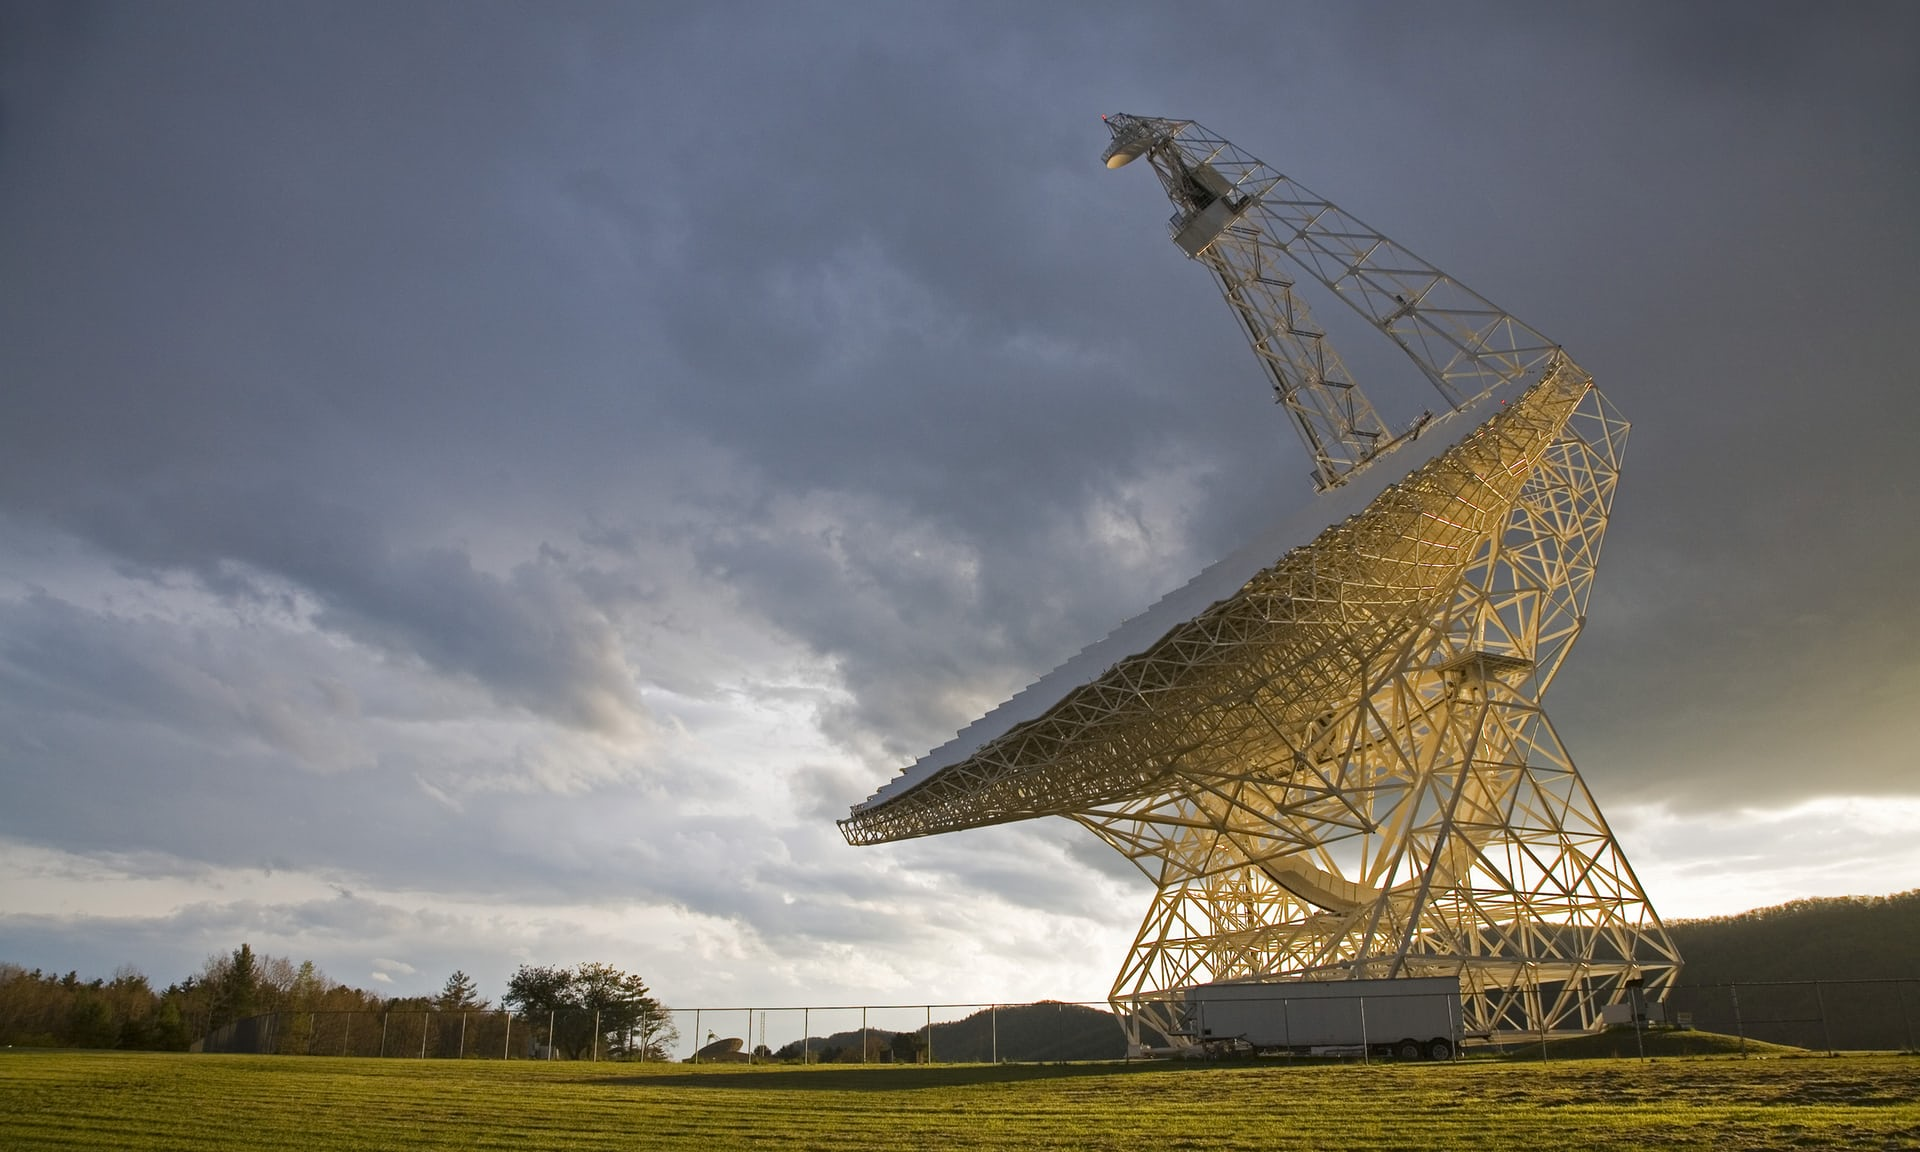 Searching the deep space: The Robert C Byrd Green Bank telescope at the National Radio Astronomy Observatory, part of the Listening Project, in Green Bank, West Virginia, US